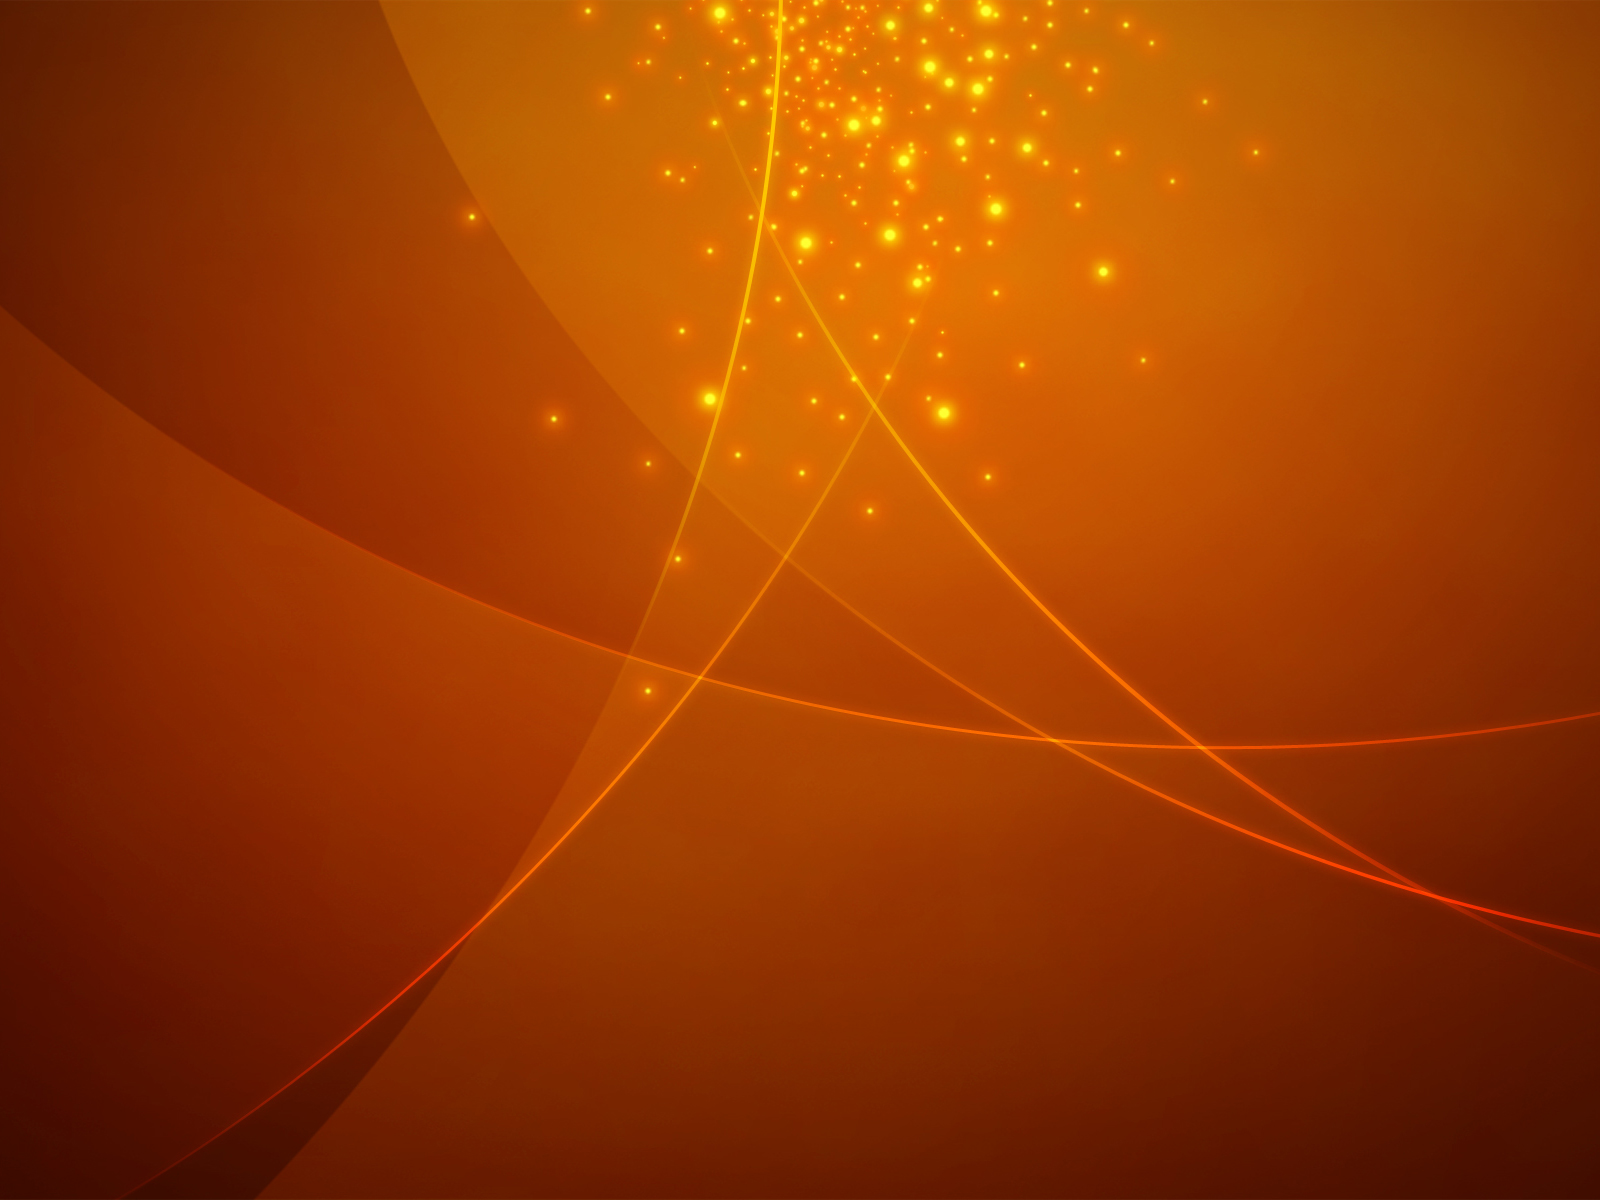 Orange Abstract PPT Background Background for Powerpoint Program